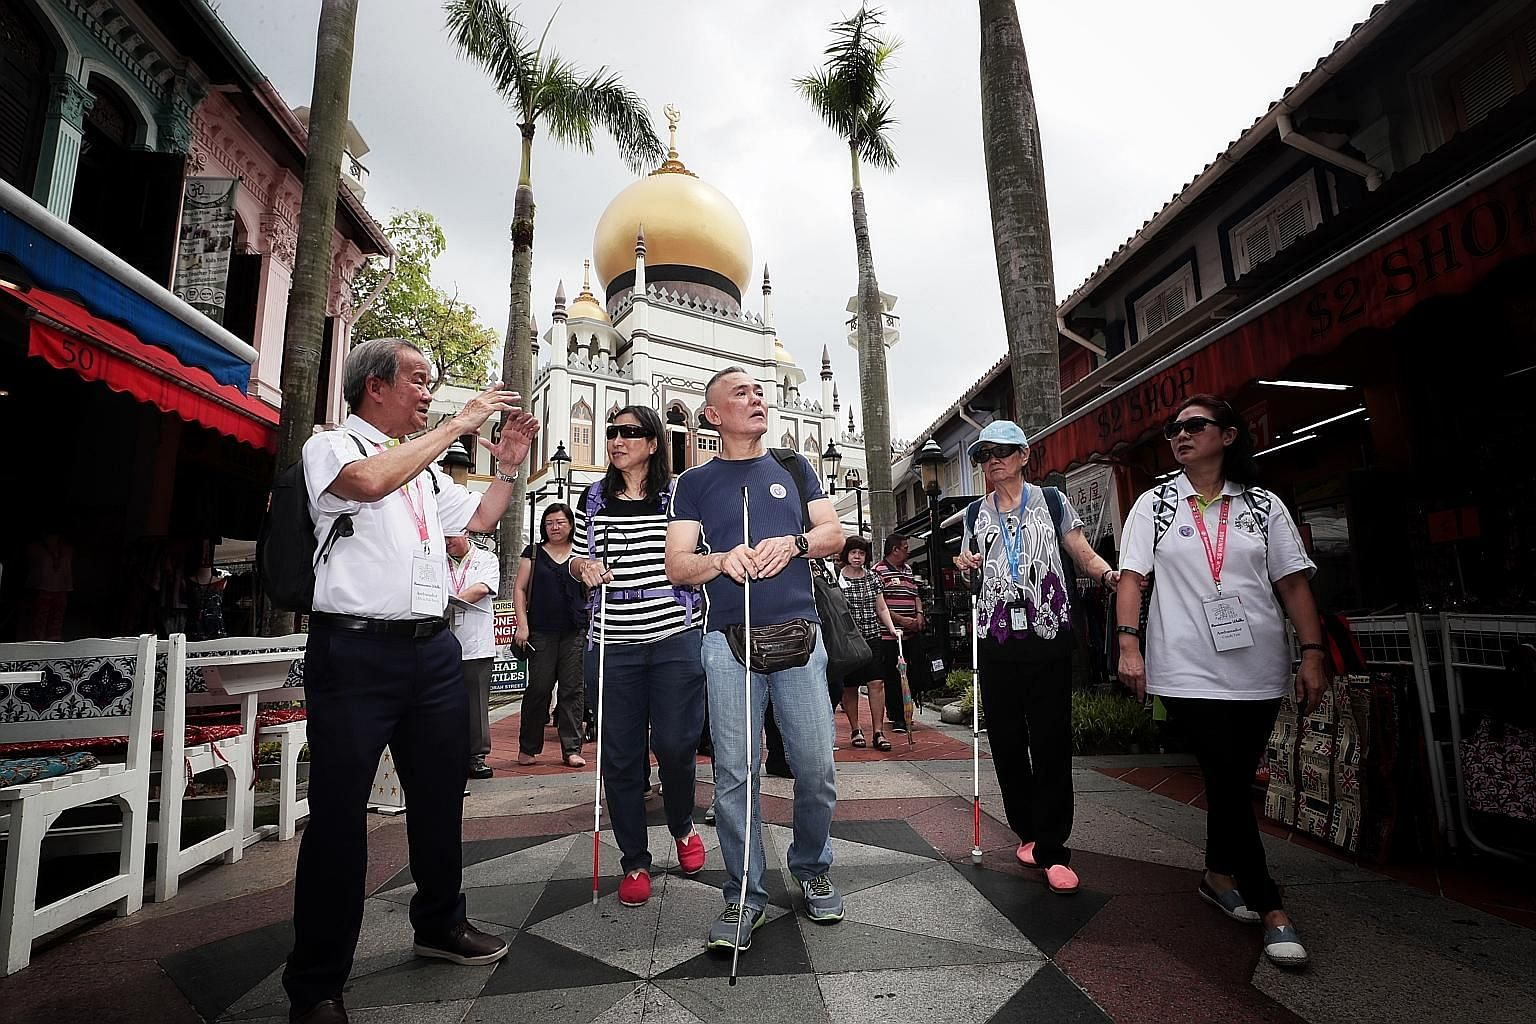 Senior ambassador Chhua Bak Siang (far left) guiding visually impaired participants from Guide Dogs Singapore, including masseur Tan Chiew Song (in blue), around Kampong Glam heritage precinct, as part of the NHB's Reminiscence Walks programme.